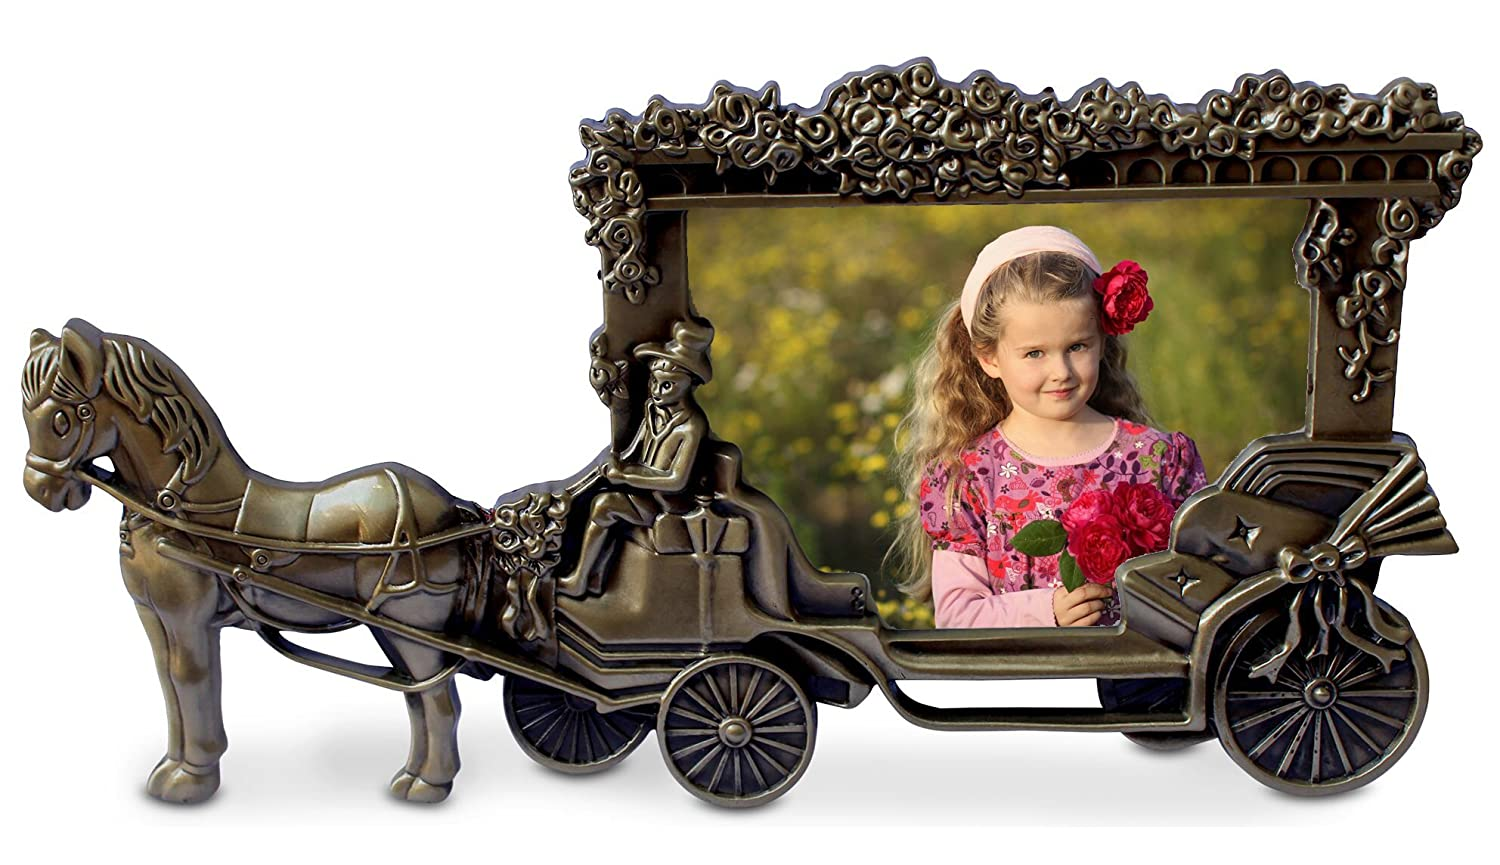 Olivery™ Horse Carriage Photo Frame - 3.5 X 5 Picture Frames - Cute Tin Alloy & Glass Home Decor - Great Baby Gift, Wedding Gift & More 【Lifetime Warranty】 Olivery Pure Living Inc.